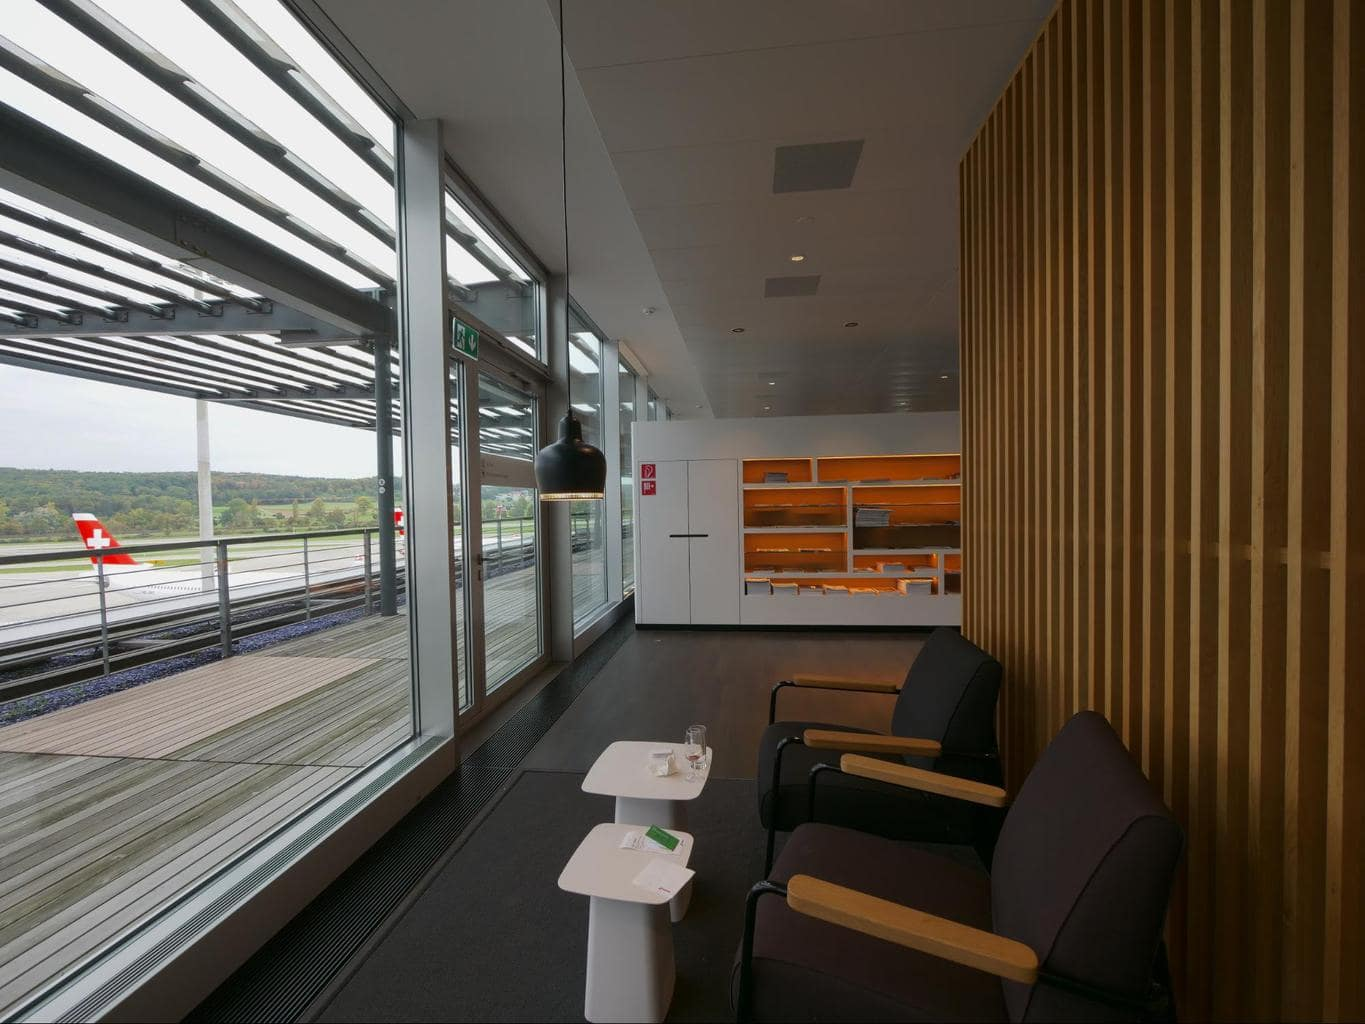 Runway views from Swiss Business Class lounge at Zurich airport